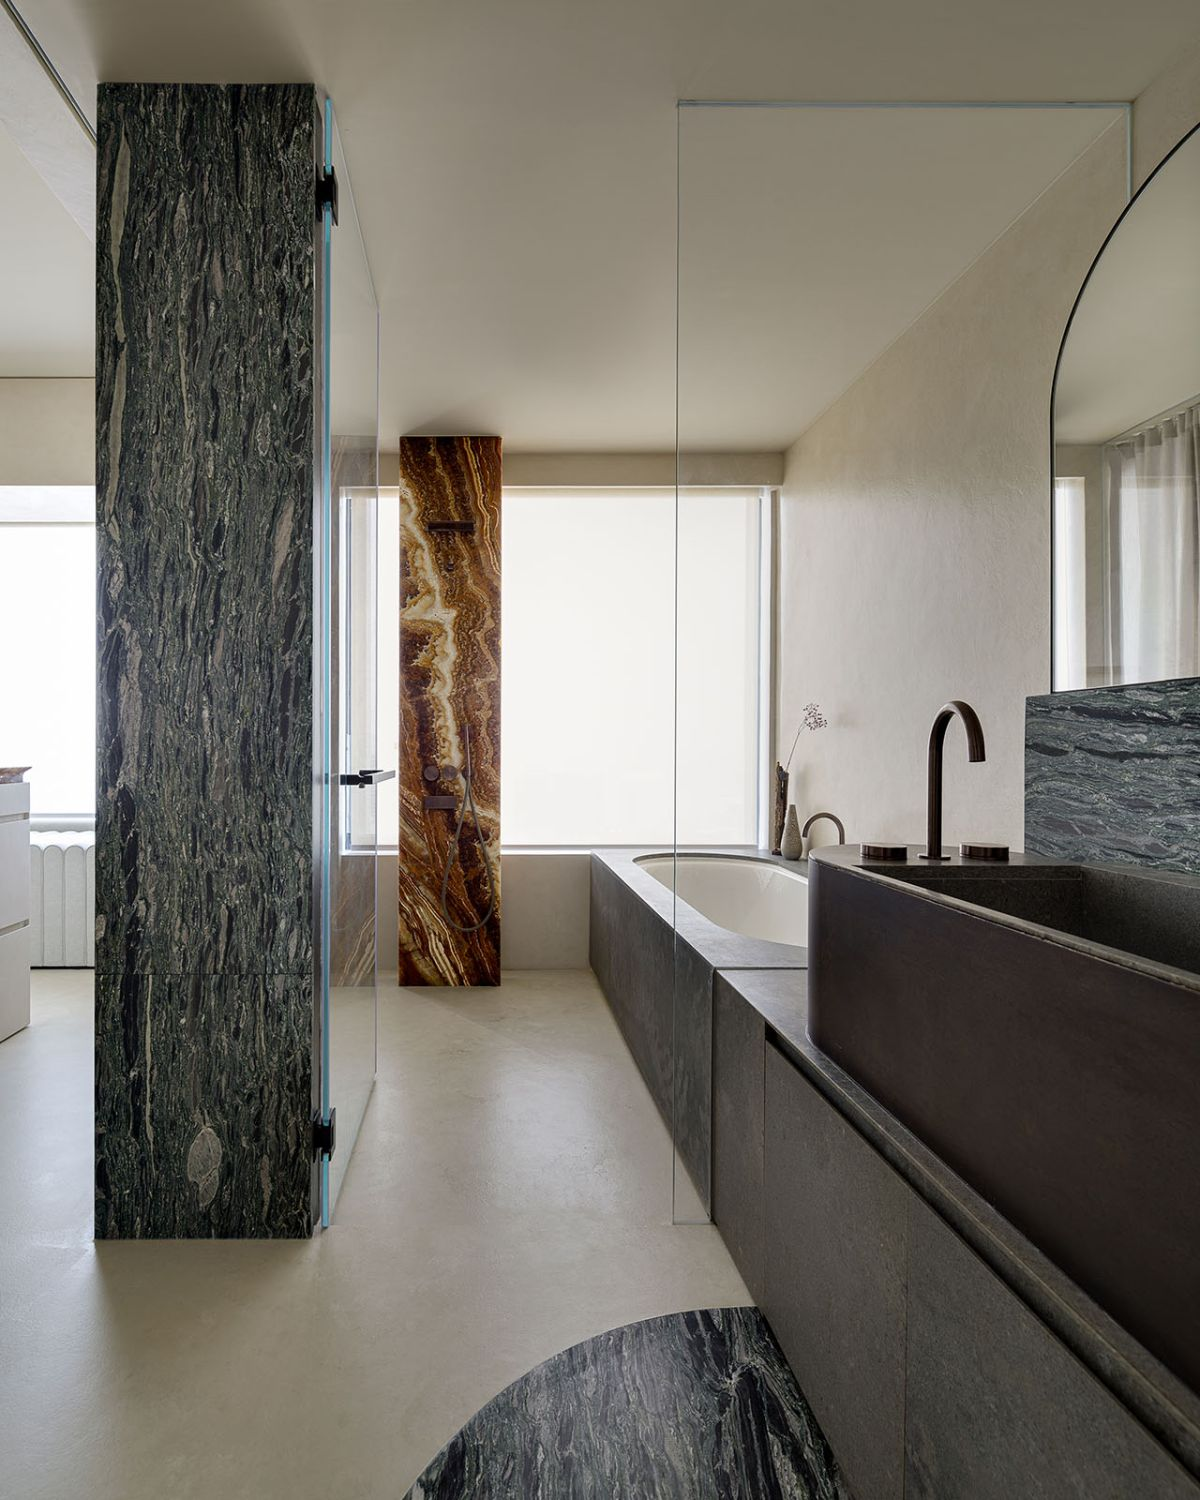 The bathroom features eye-catching marble columns which hide the utilities